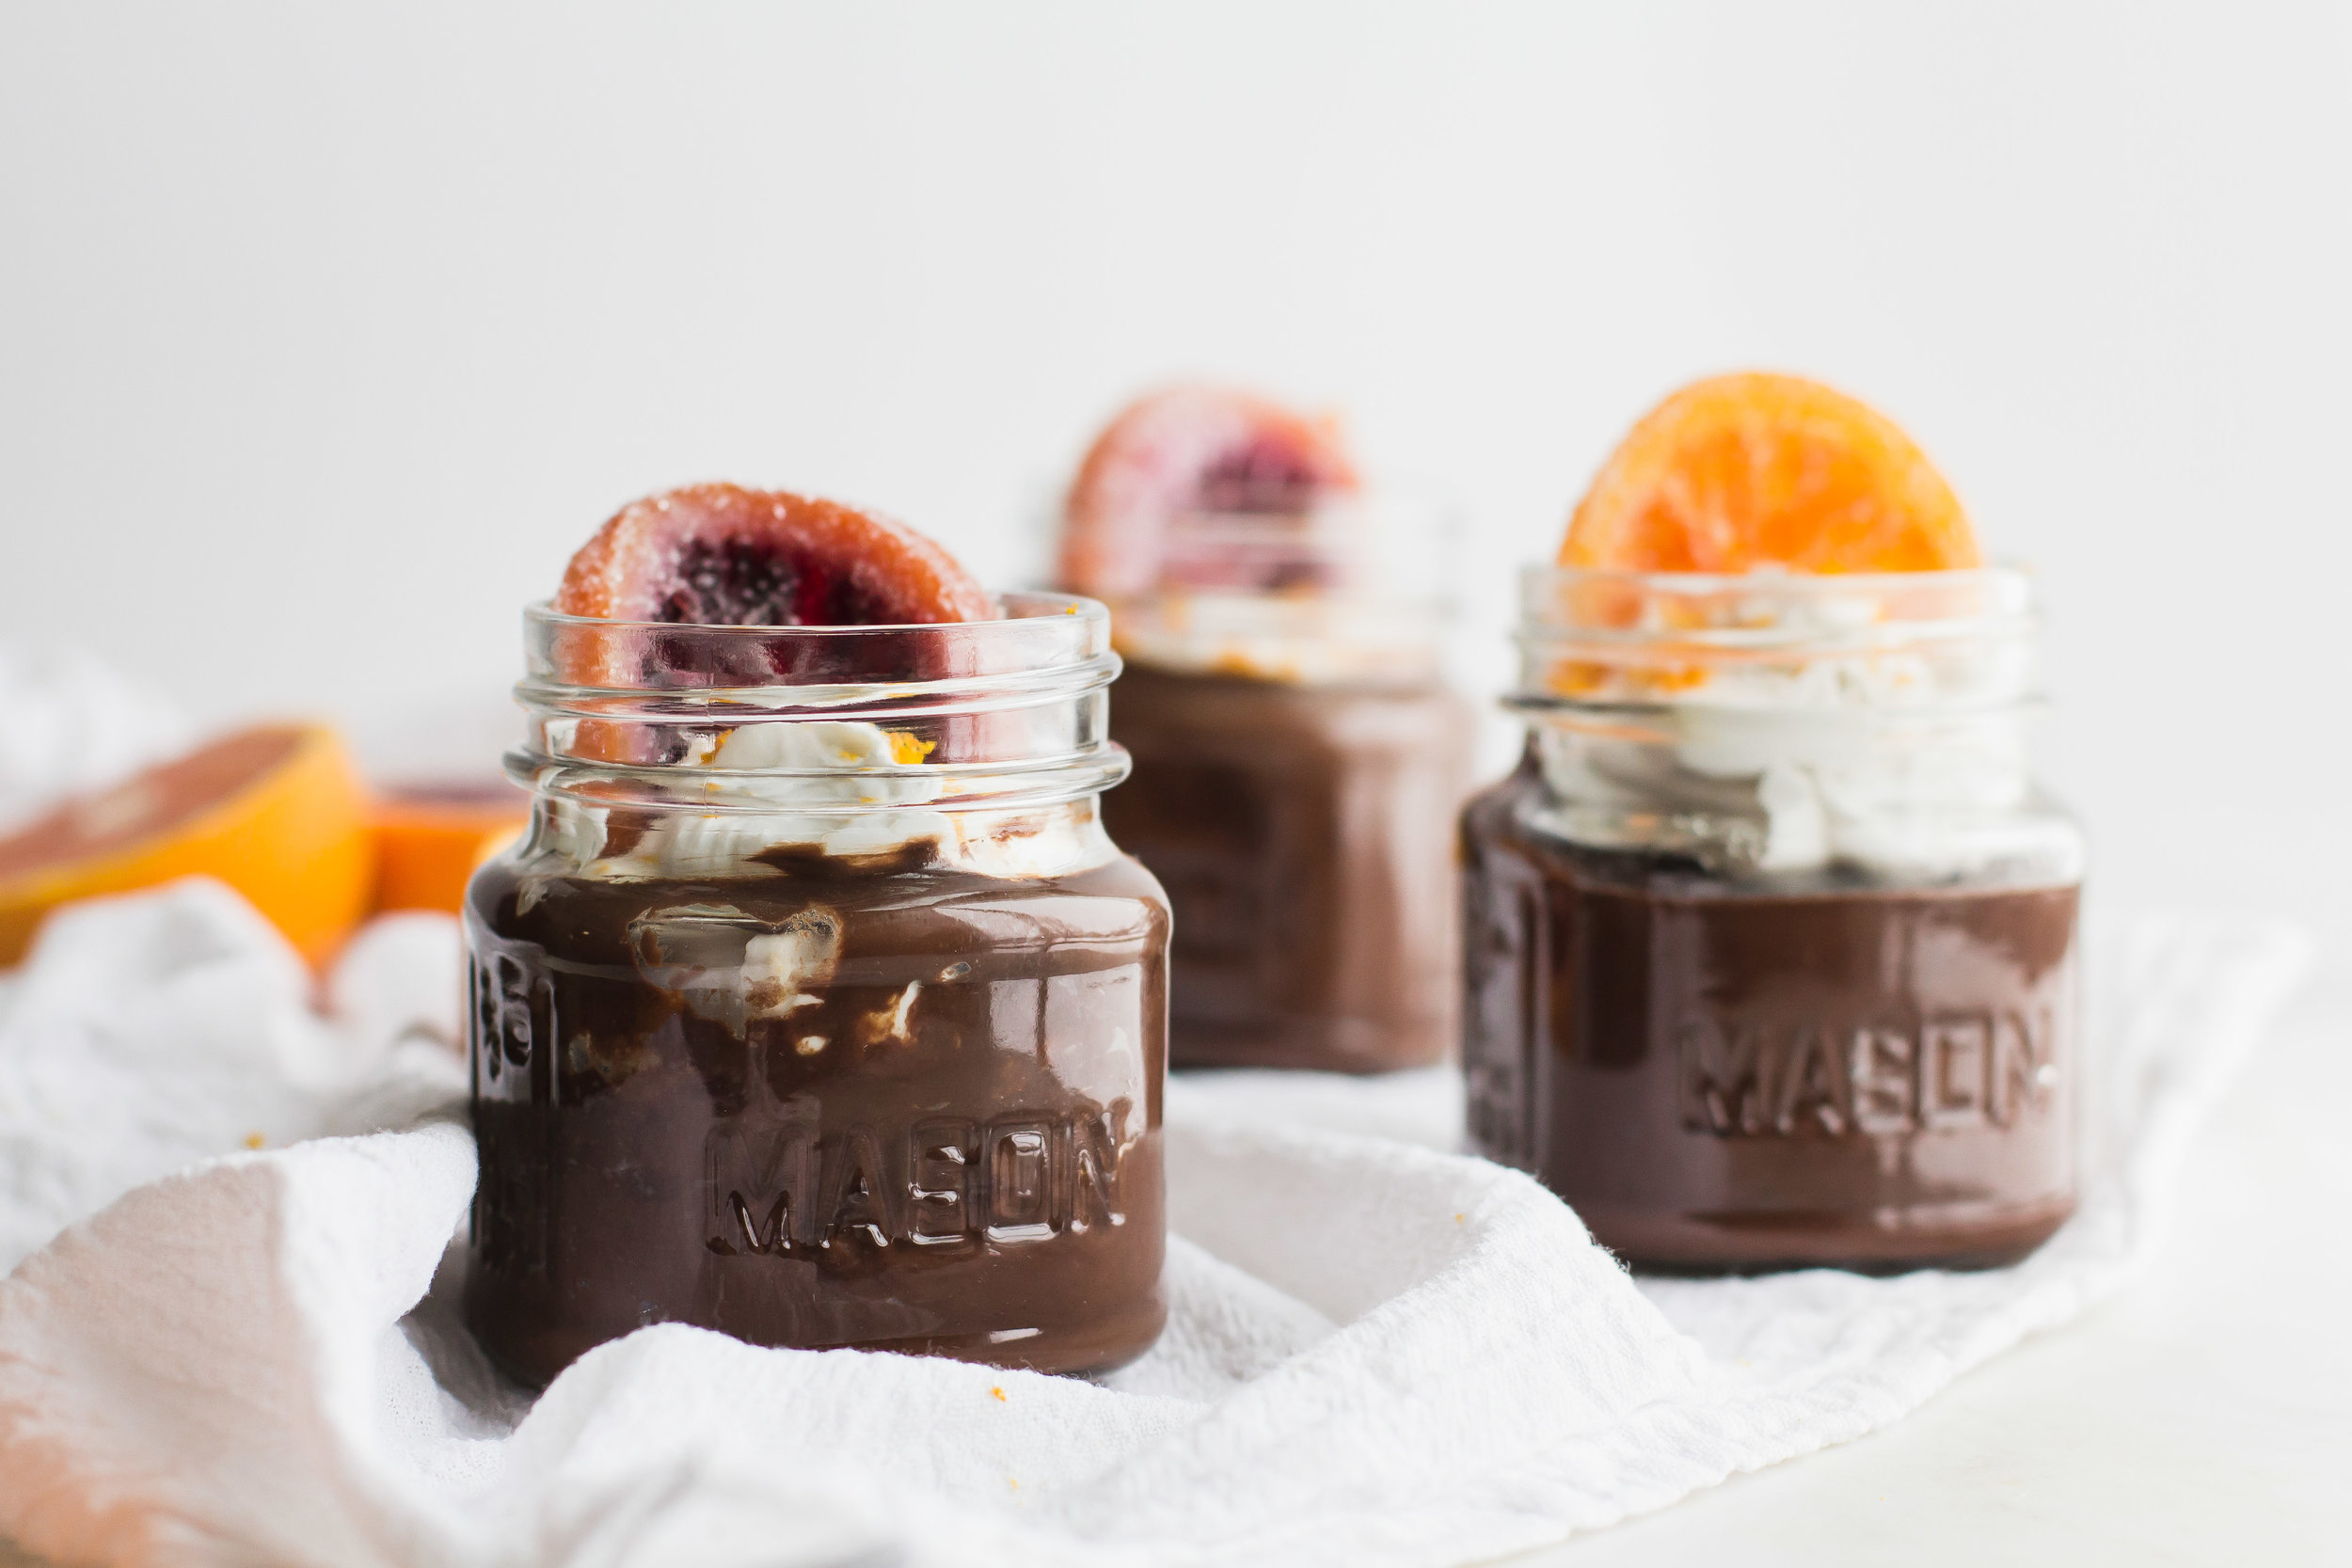 Dairy Free (and Vegan!) Chocolate Pudding with Candied Orange Slices | Sarah J. Hauser